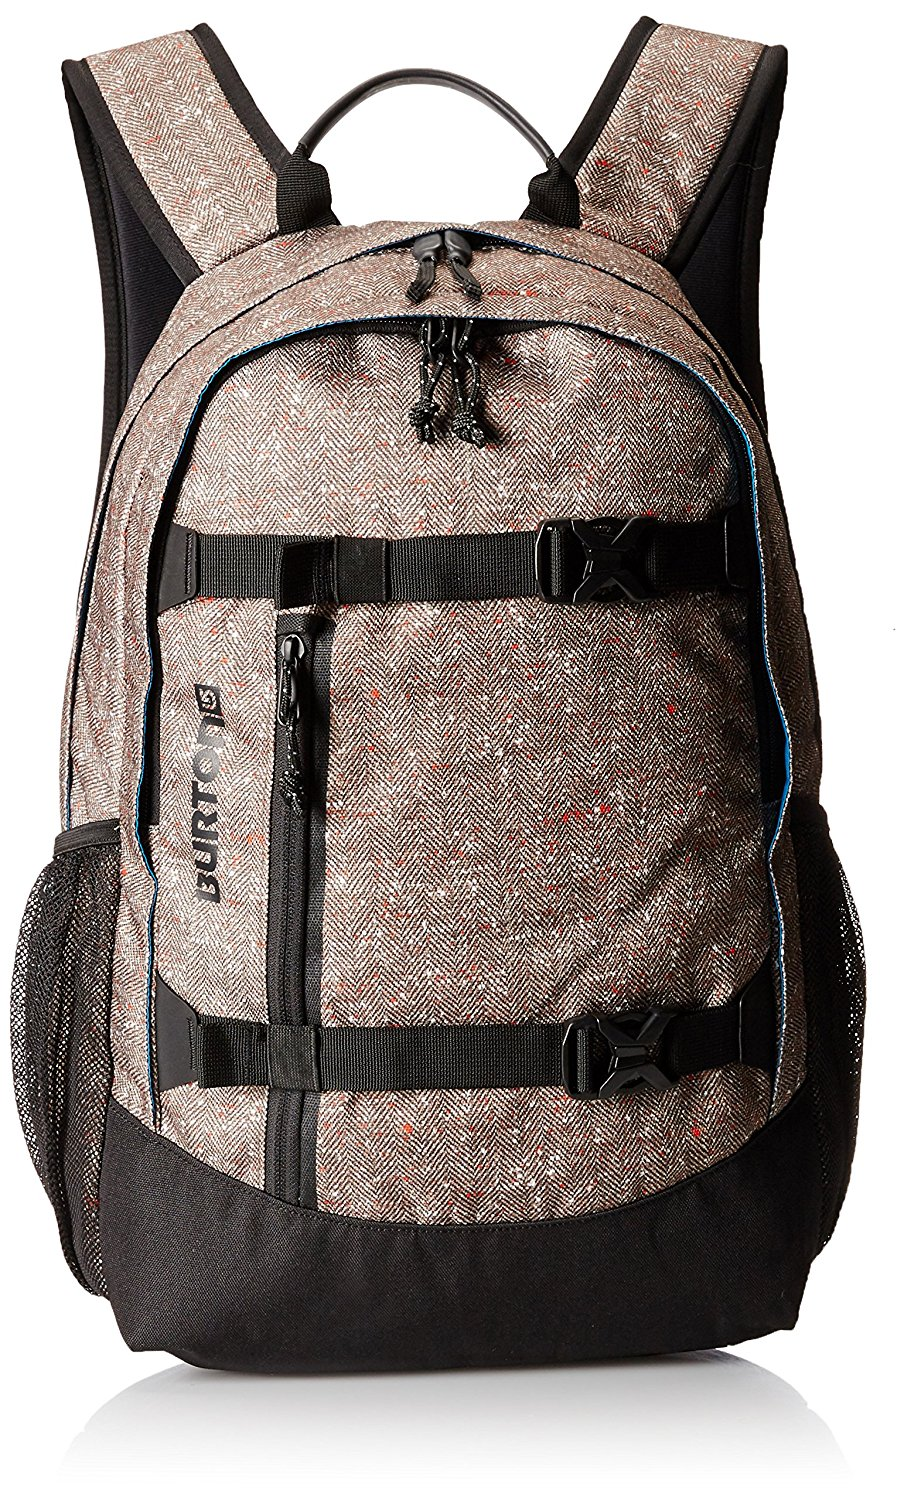 289fe55f7dad6 Get Quotations · BURTON Day Hiker Backpack